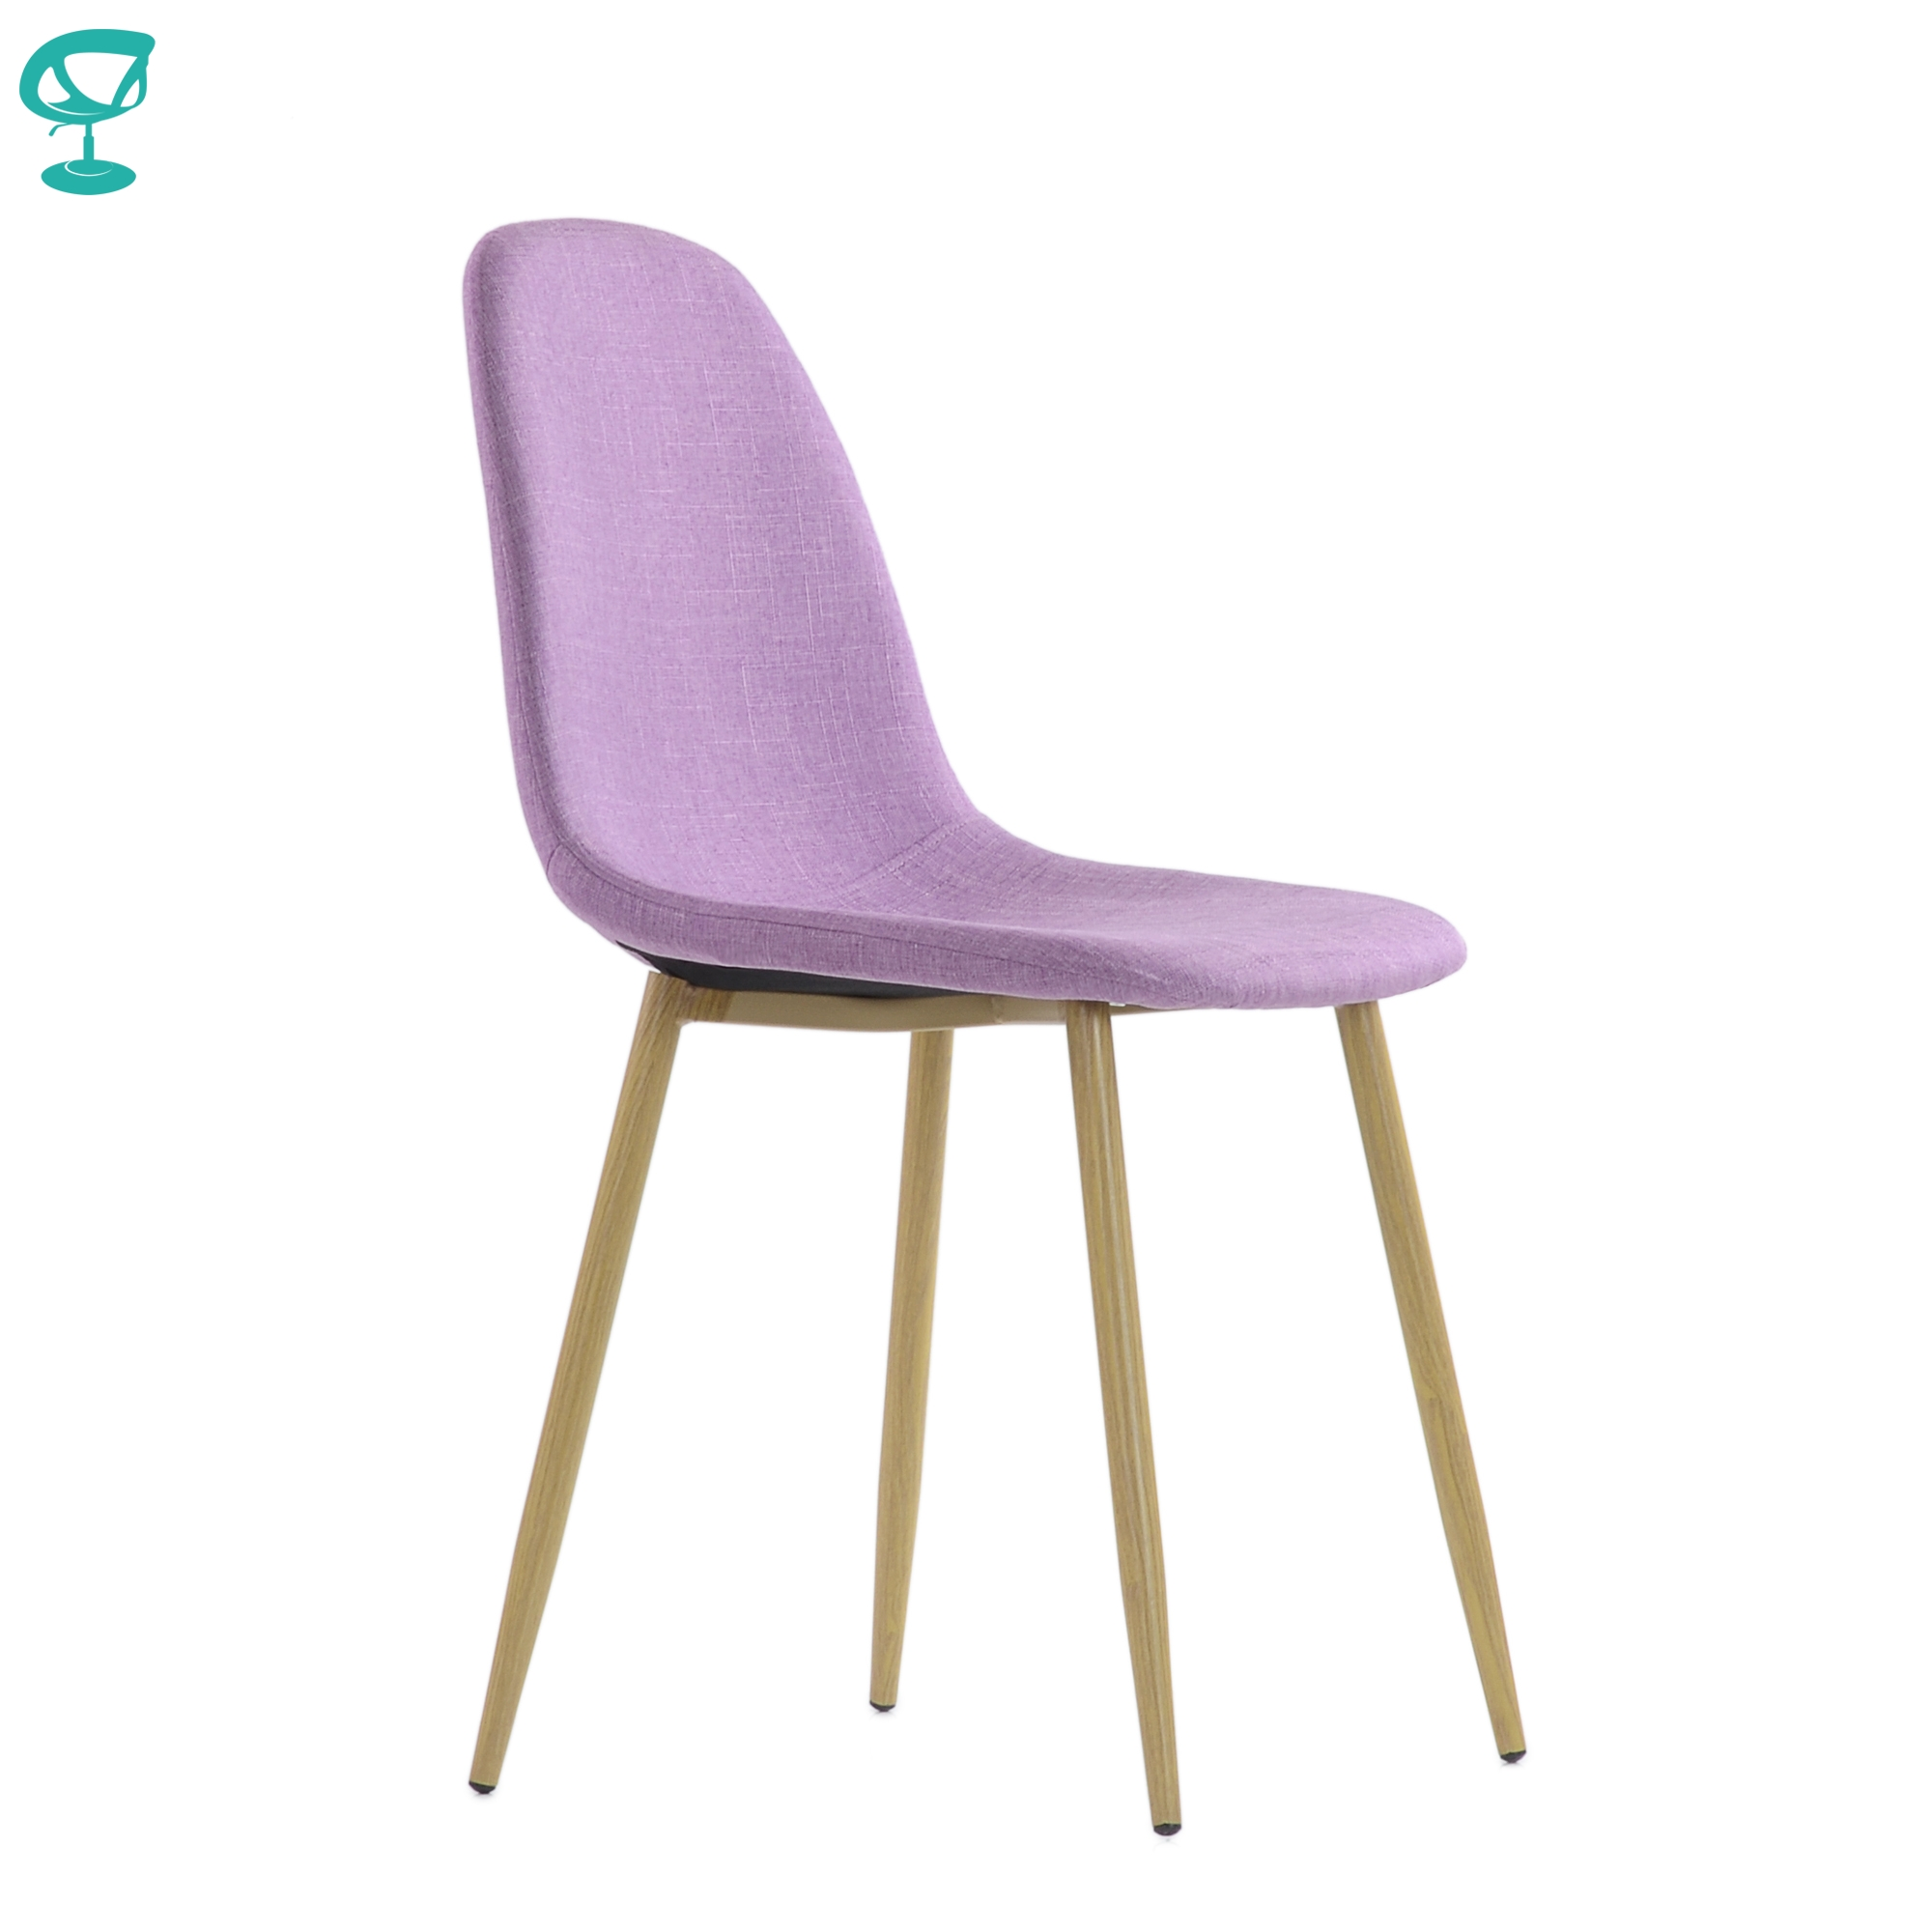 95748 Barneo S-15 Lilac Kitchen Chair Legs Metal Seat Fabric Chair For Living Room Dining Table Chair Furniture For Kitchen